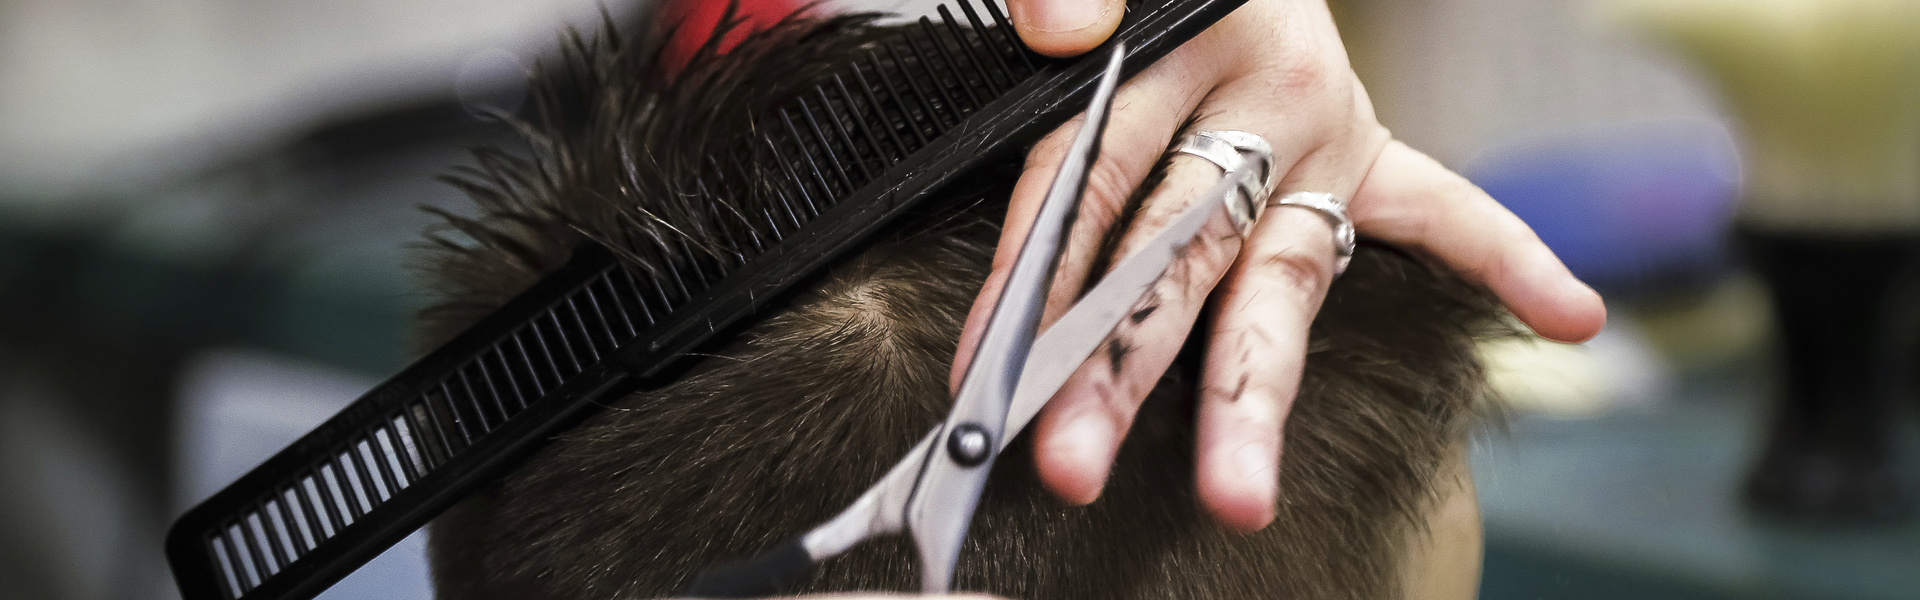 Skilled female hairstylist is cutting cutting hair with scissors at a barber shop. Close up of by head and hands of hairdresser  with Scissors and comb.